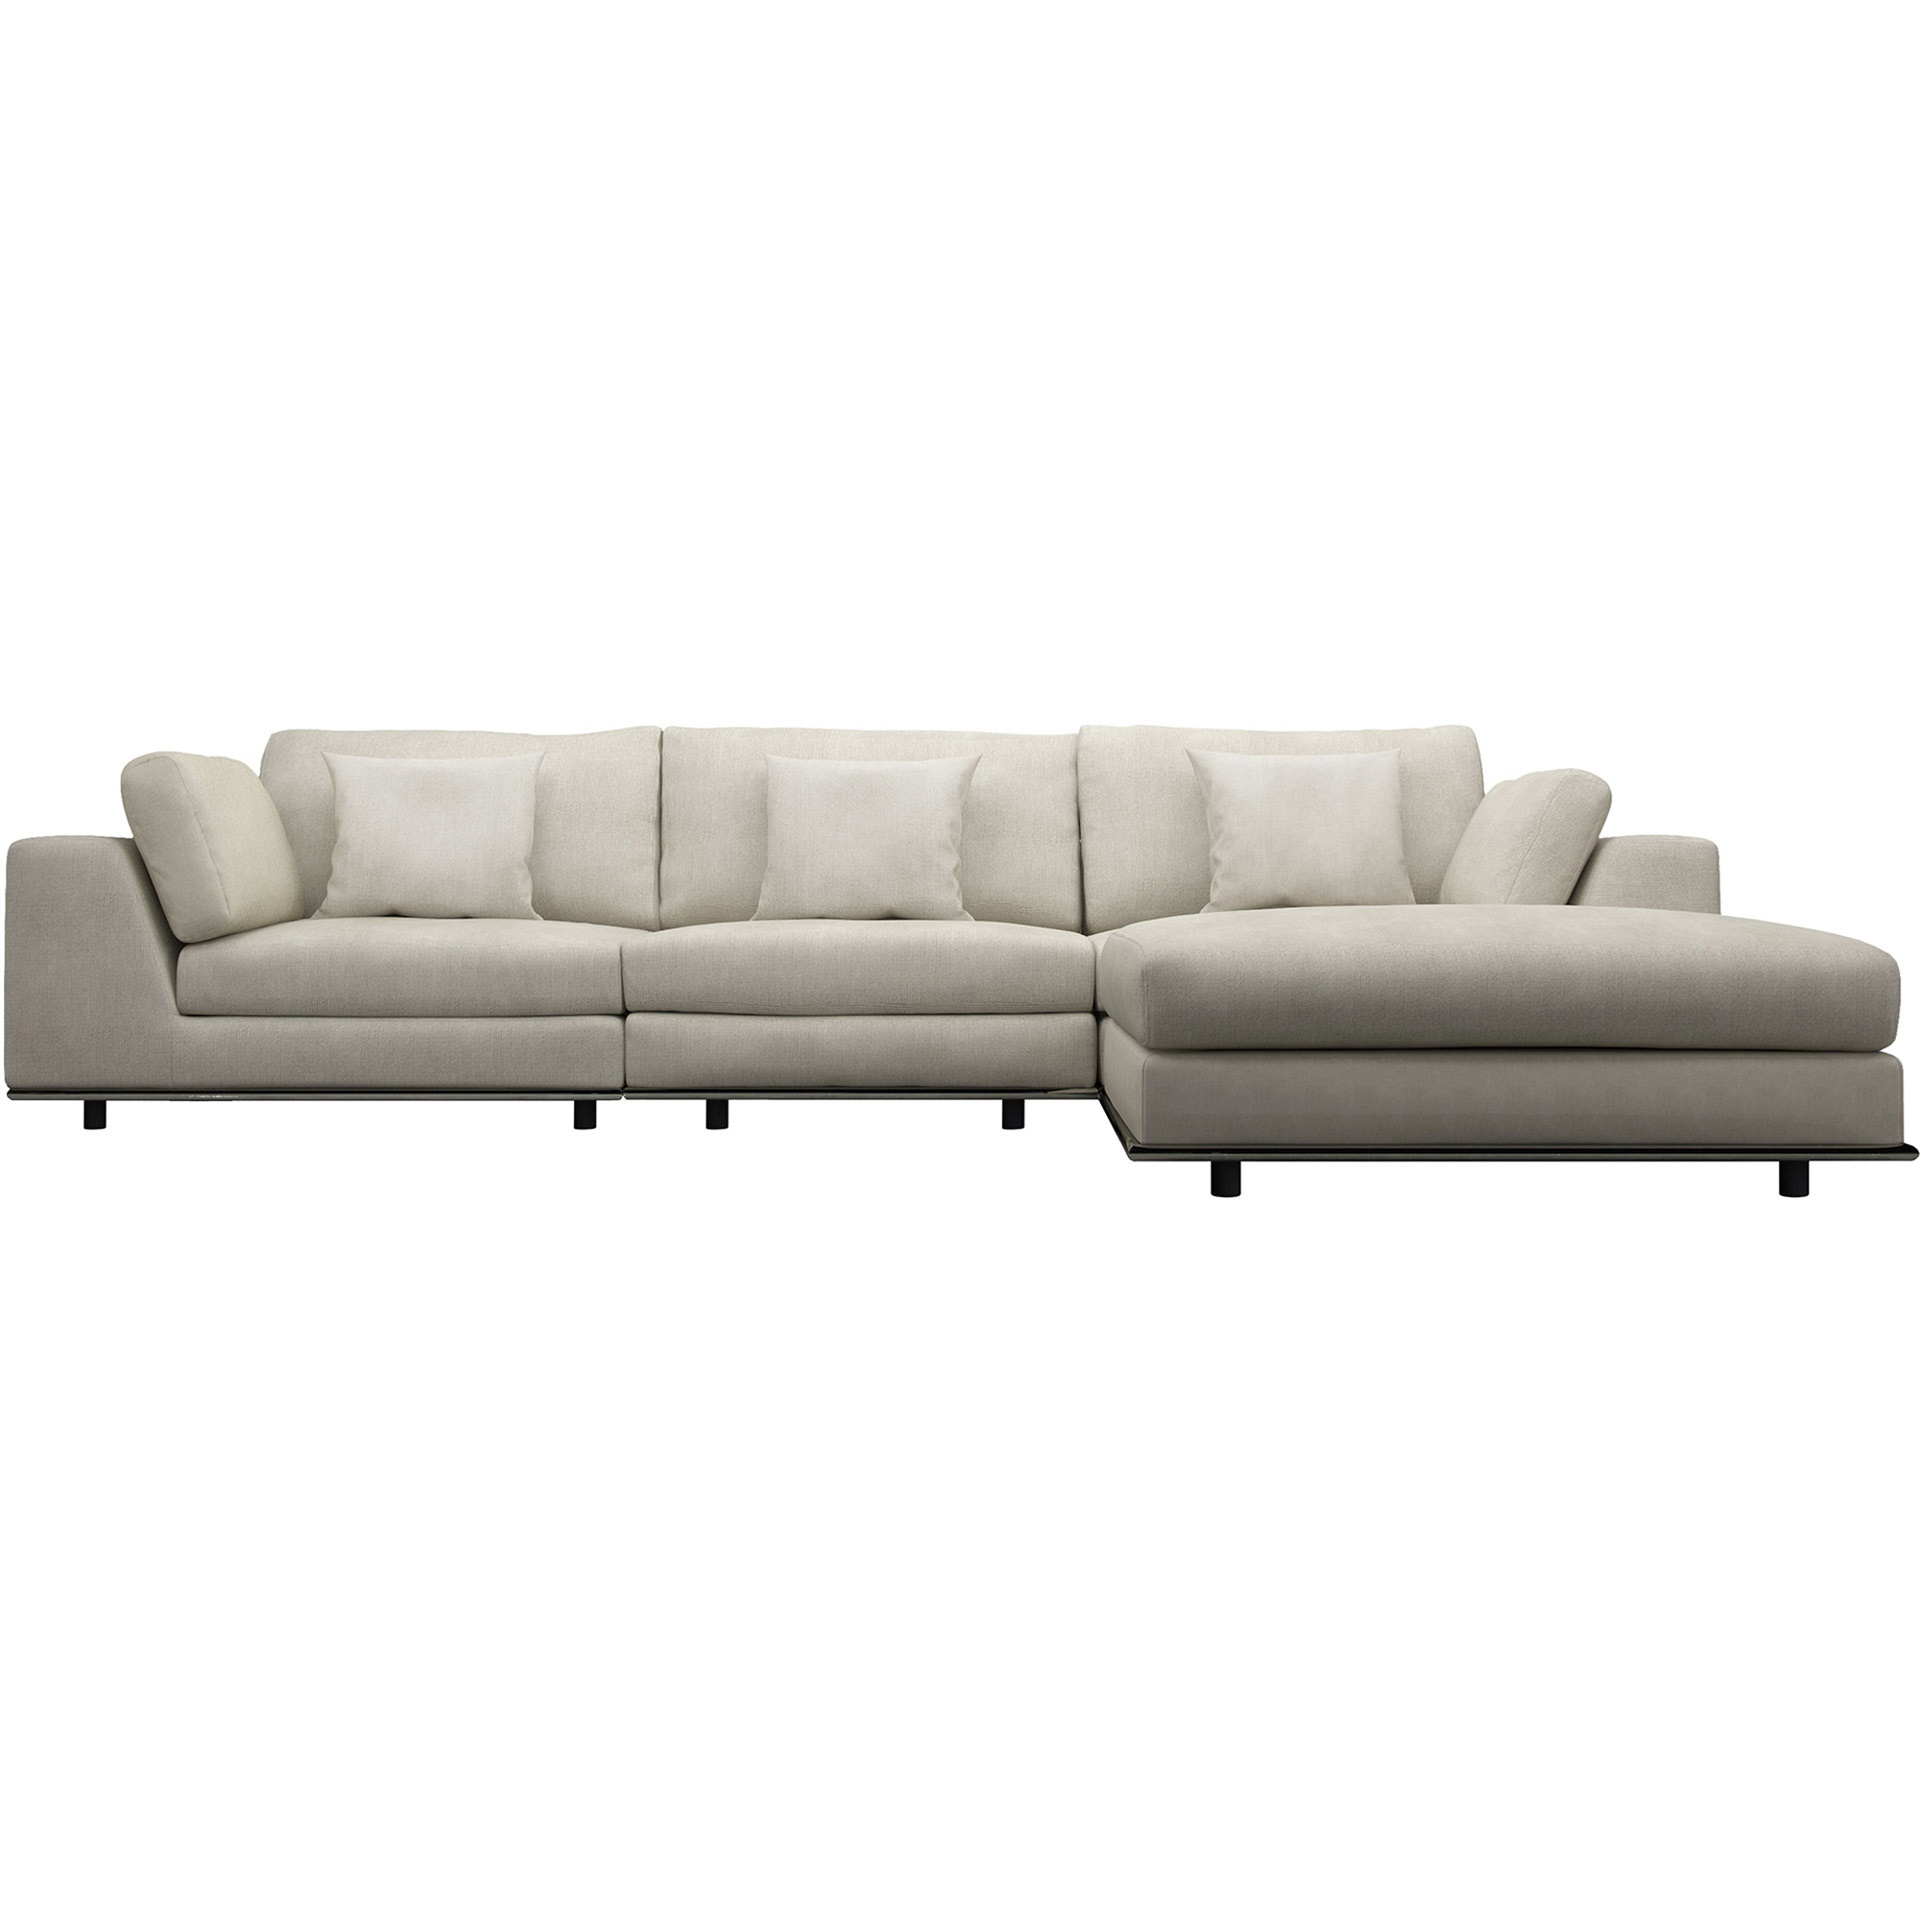 Perry 3-Seat Sofa with Ottoman